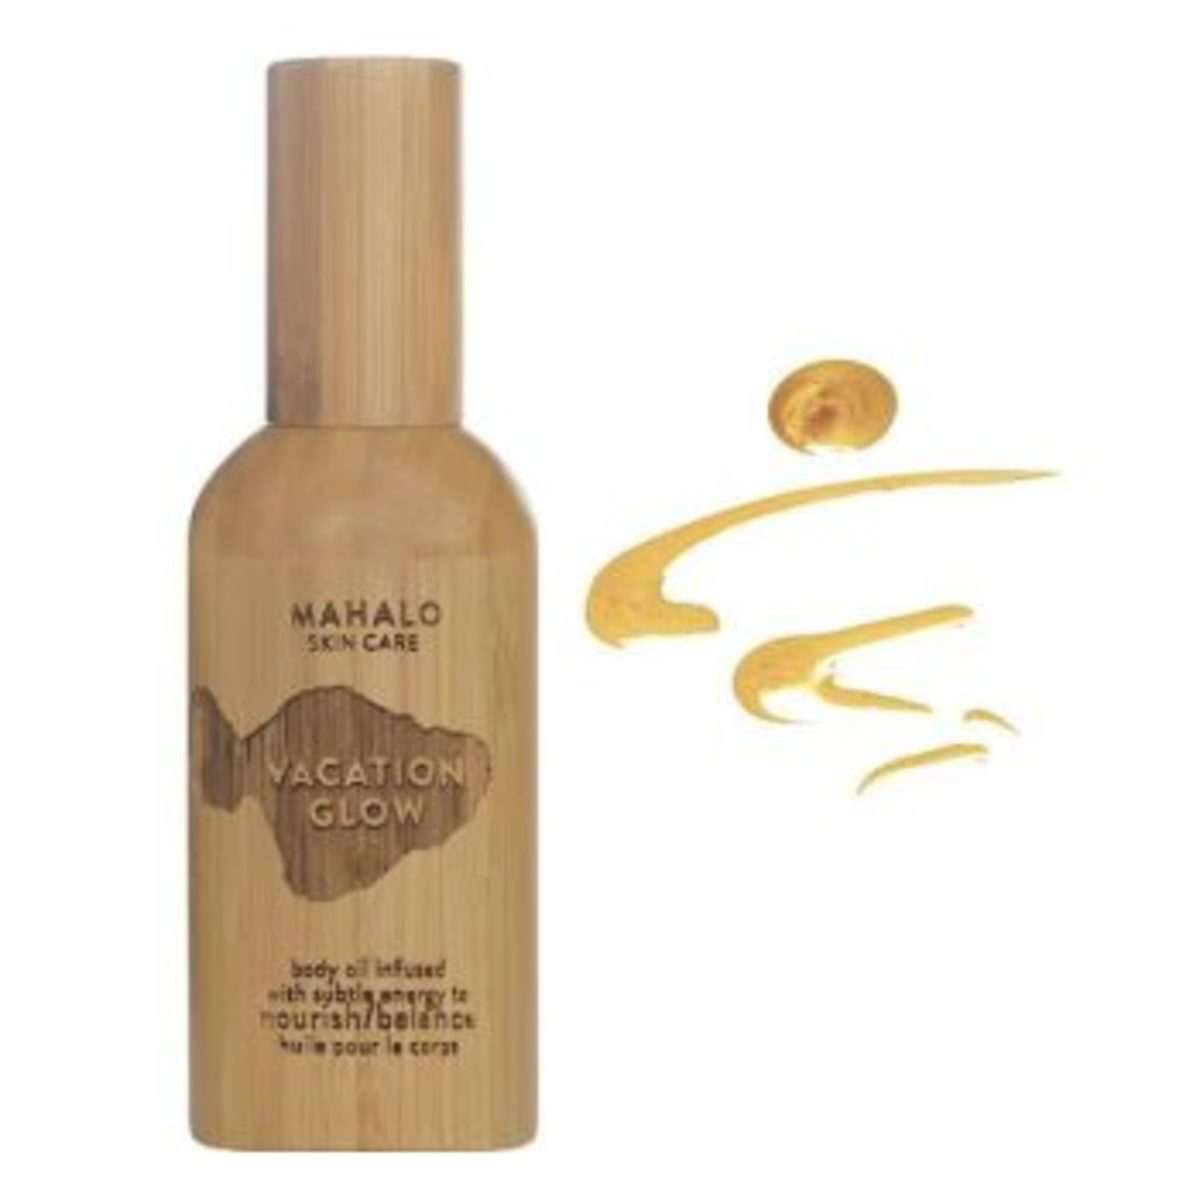 13-mahalo-vacation-glow-body-and-hair-elixir-350x350